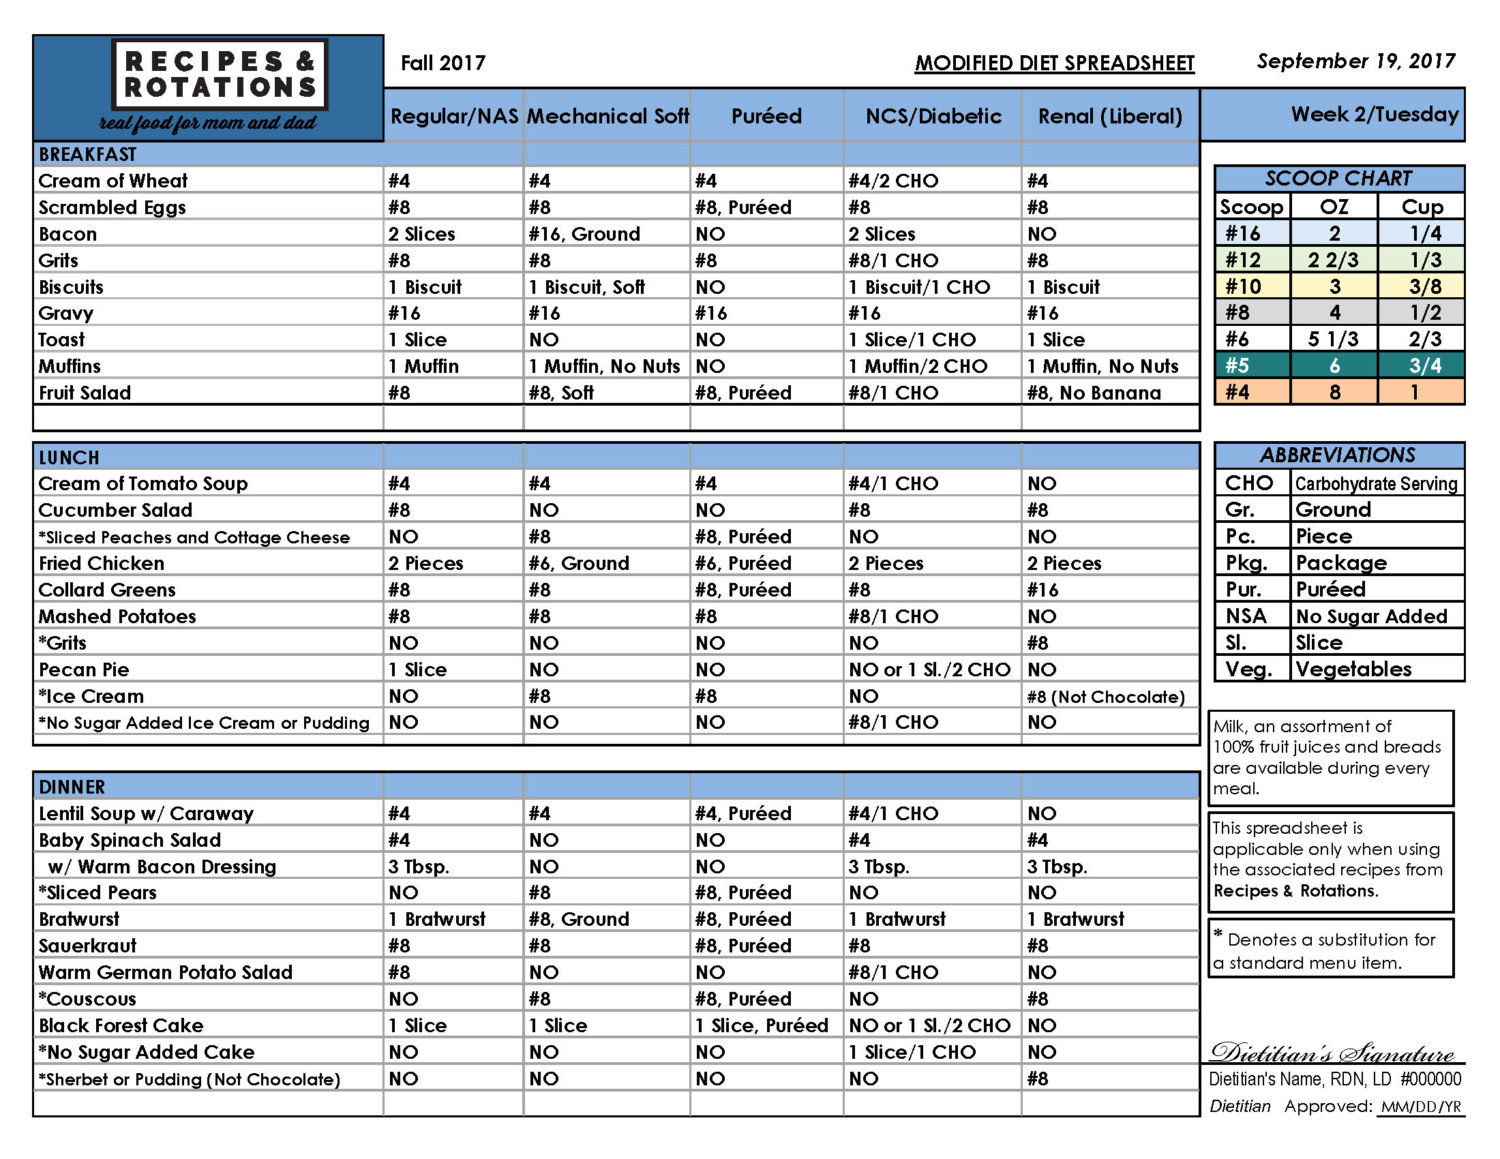 Diet Spreadsheet Template Within Daily Diet Spreadsheets  Recipes  Rotations